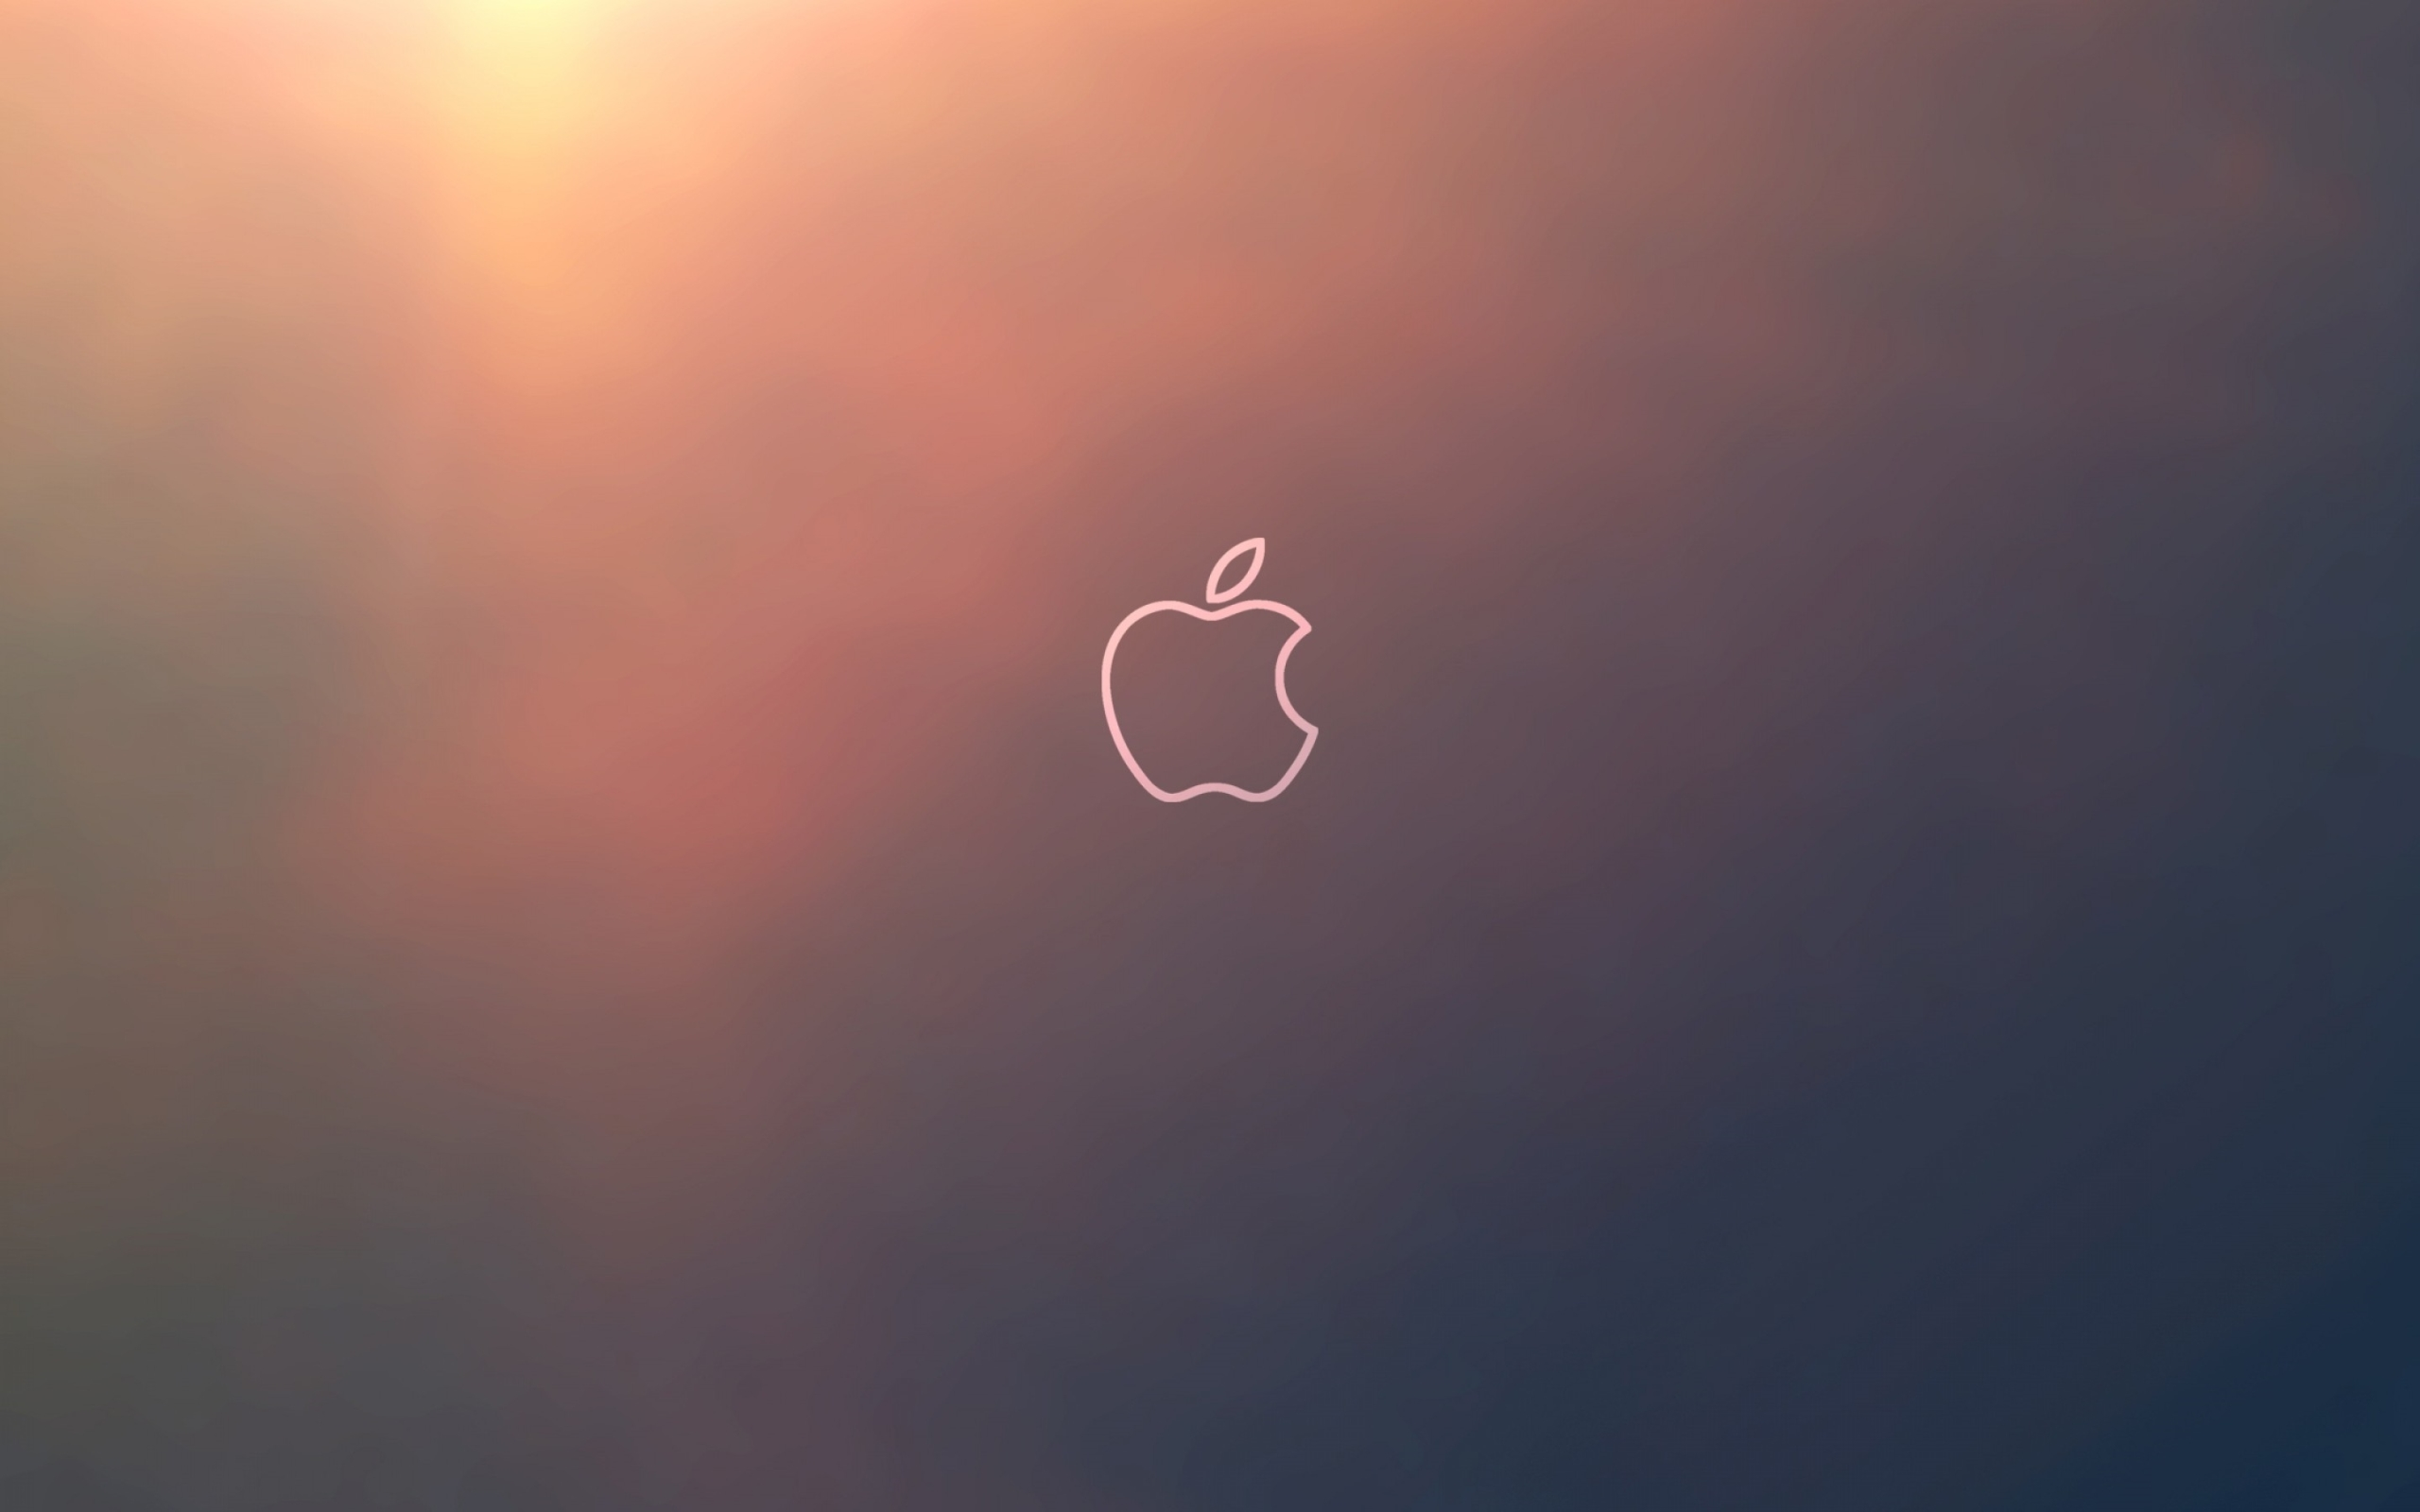 wallpapers for mac pro | free | download